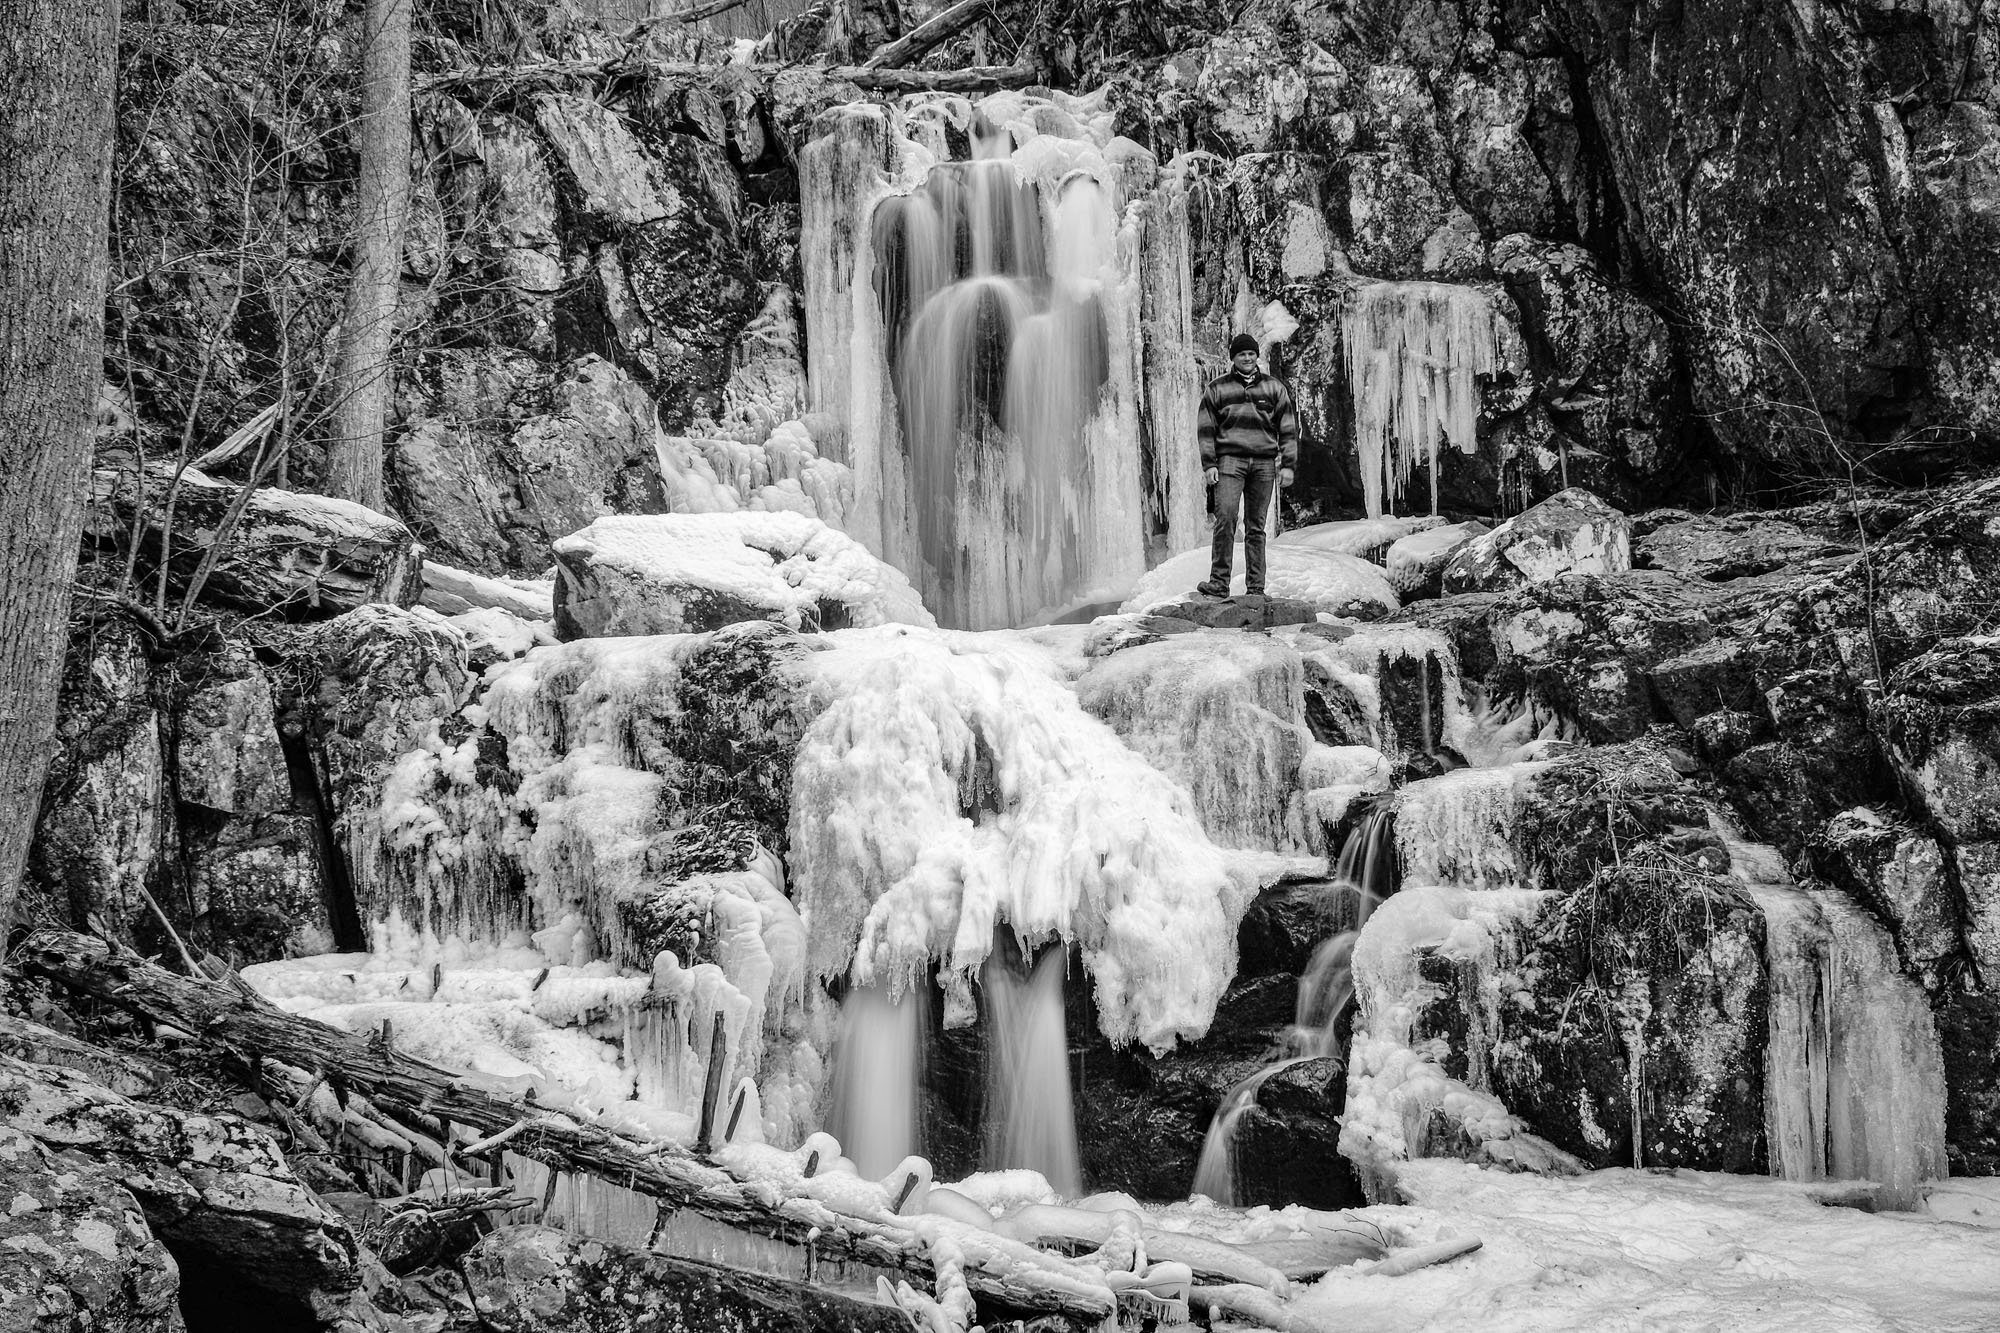 Our first glimpse of Dark Hollow Falls in winter. Beautiful frozen waterfall!